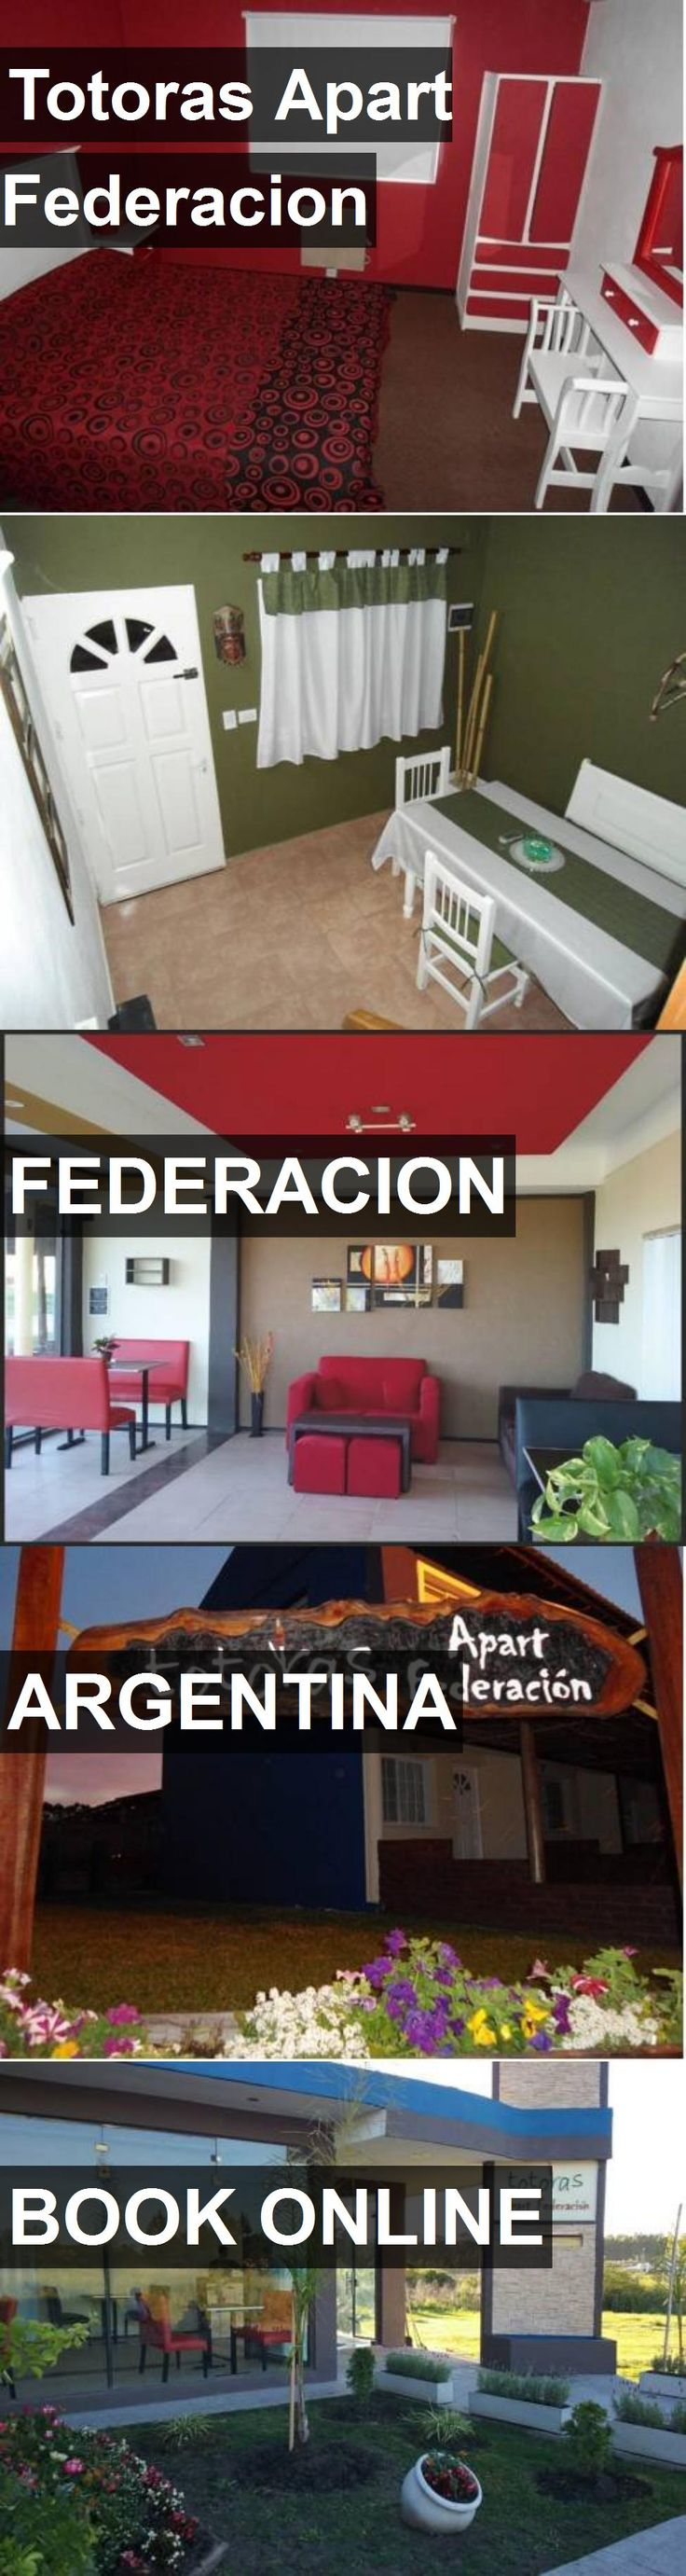 Hotel Totoras Apart Federacion in Federacion, Argentina. For more information, photos, reviews and best prices please follow the link. #Argentina #Federacion #travel #vacation #hotel